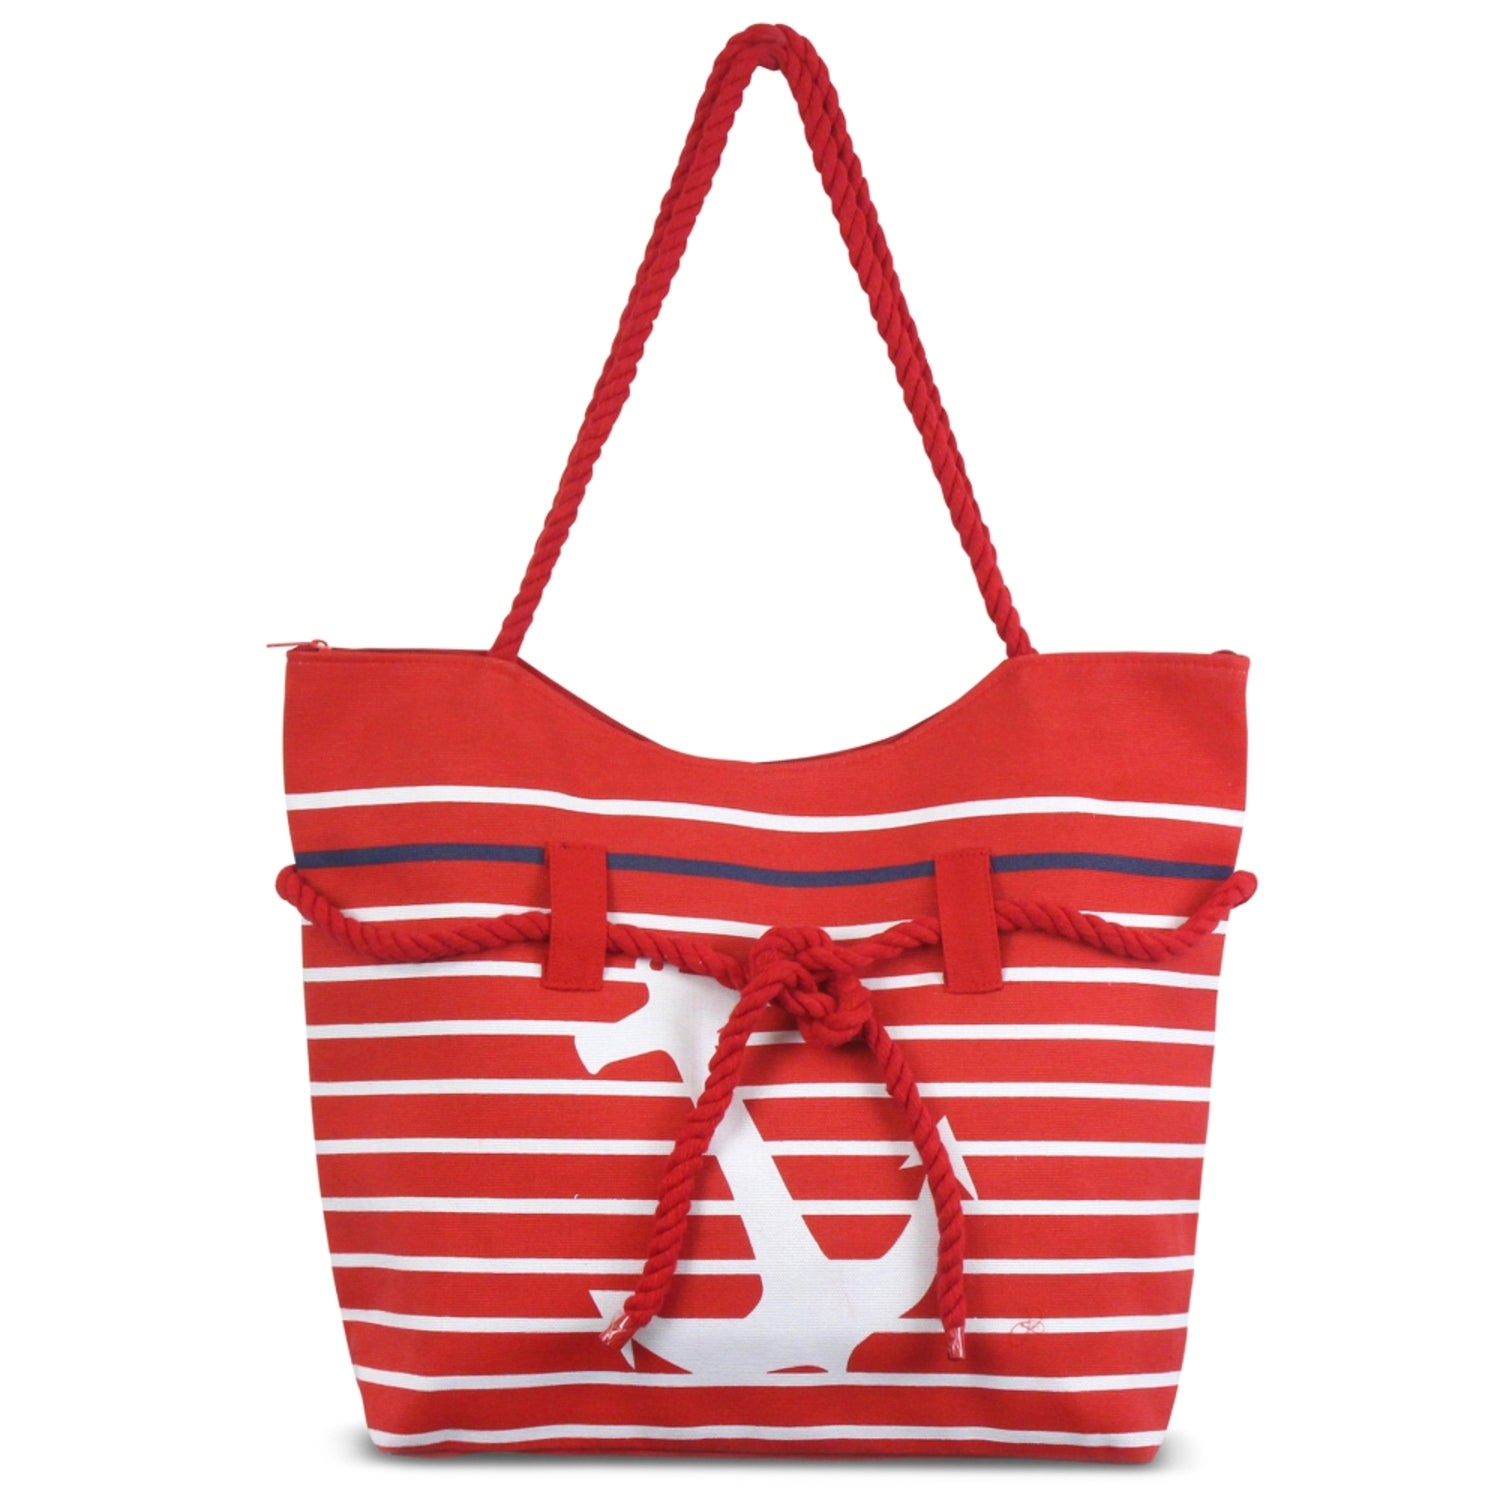 76902c6215b2 Shop Zodaca Red Anchor Women Handbag Ladies Large Rope Shoulder Tote Purse  Messenger Bag - Free Shipping On Orders Over  45 - Overstock.com - 16697955